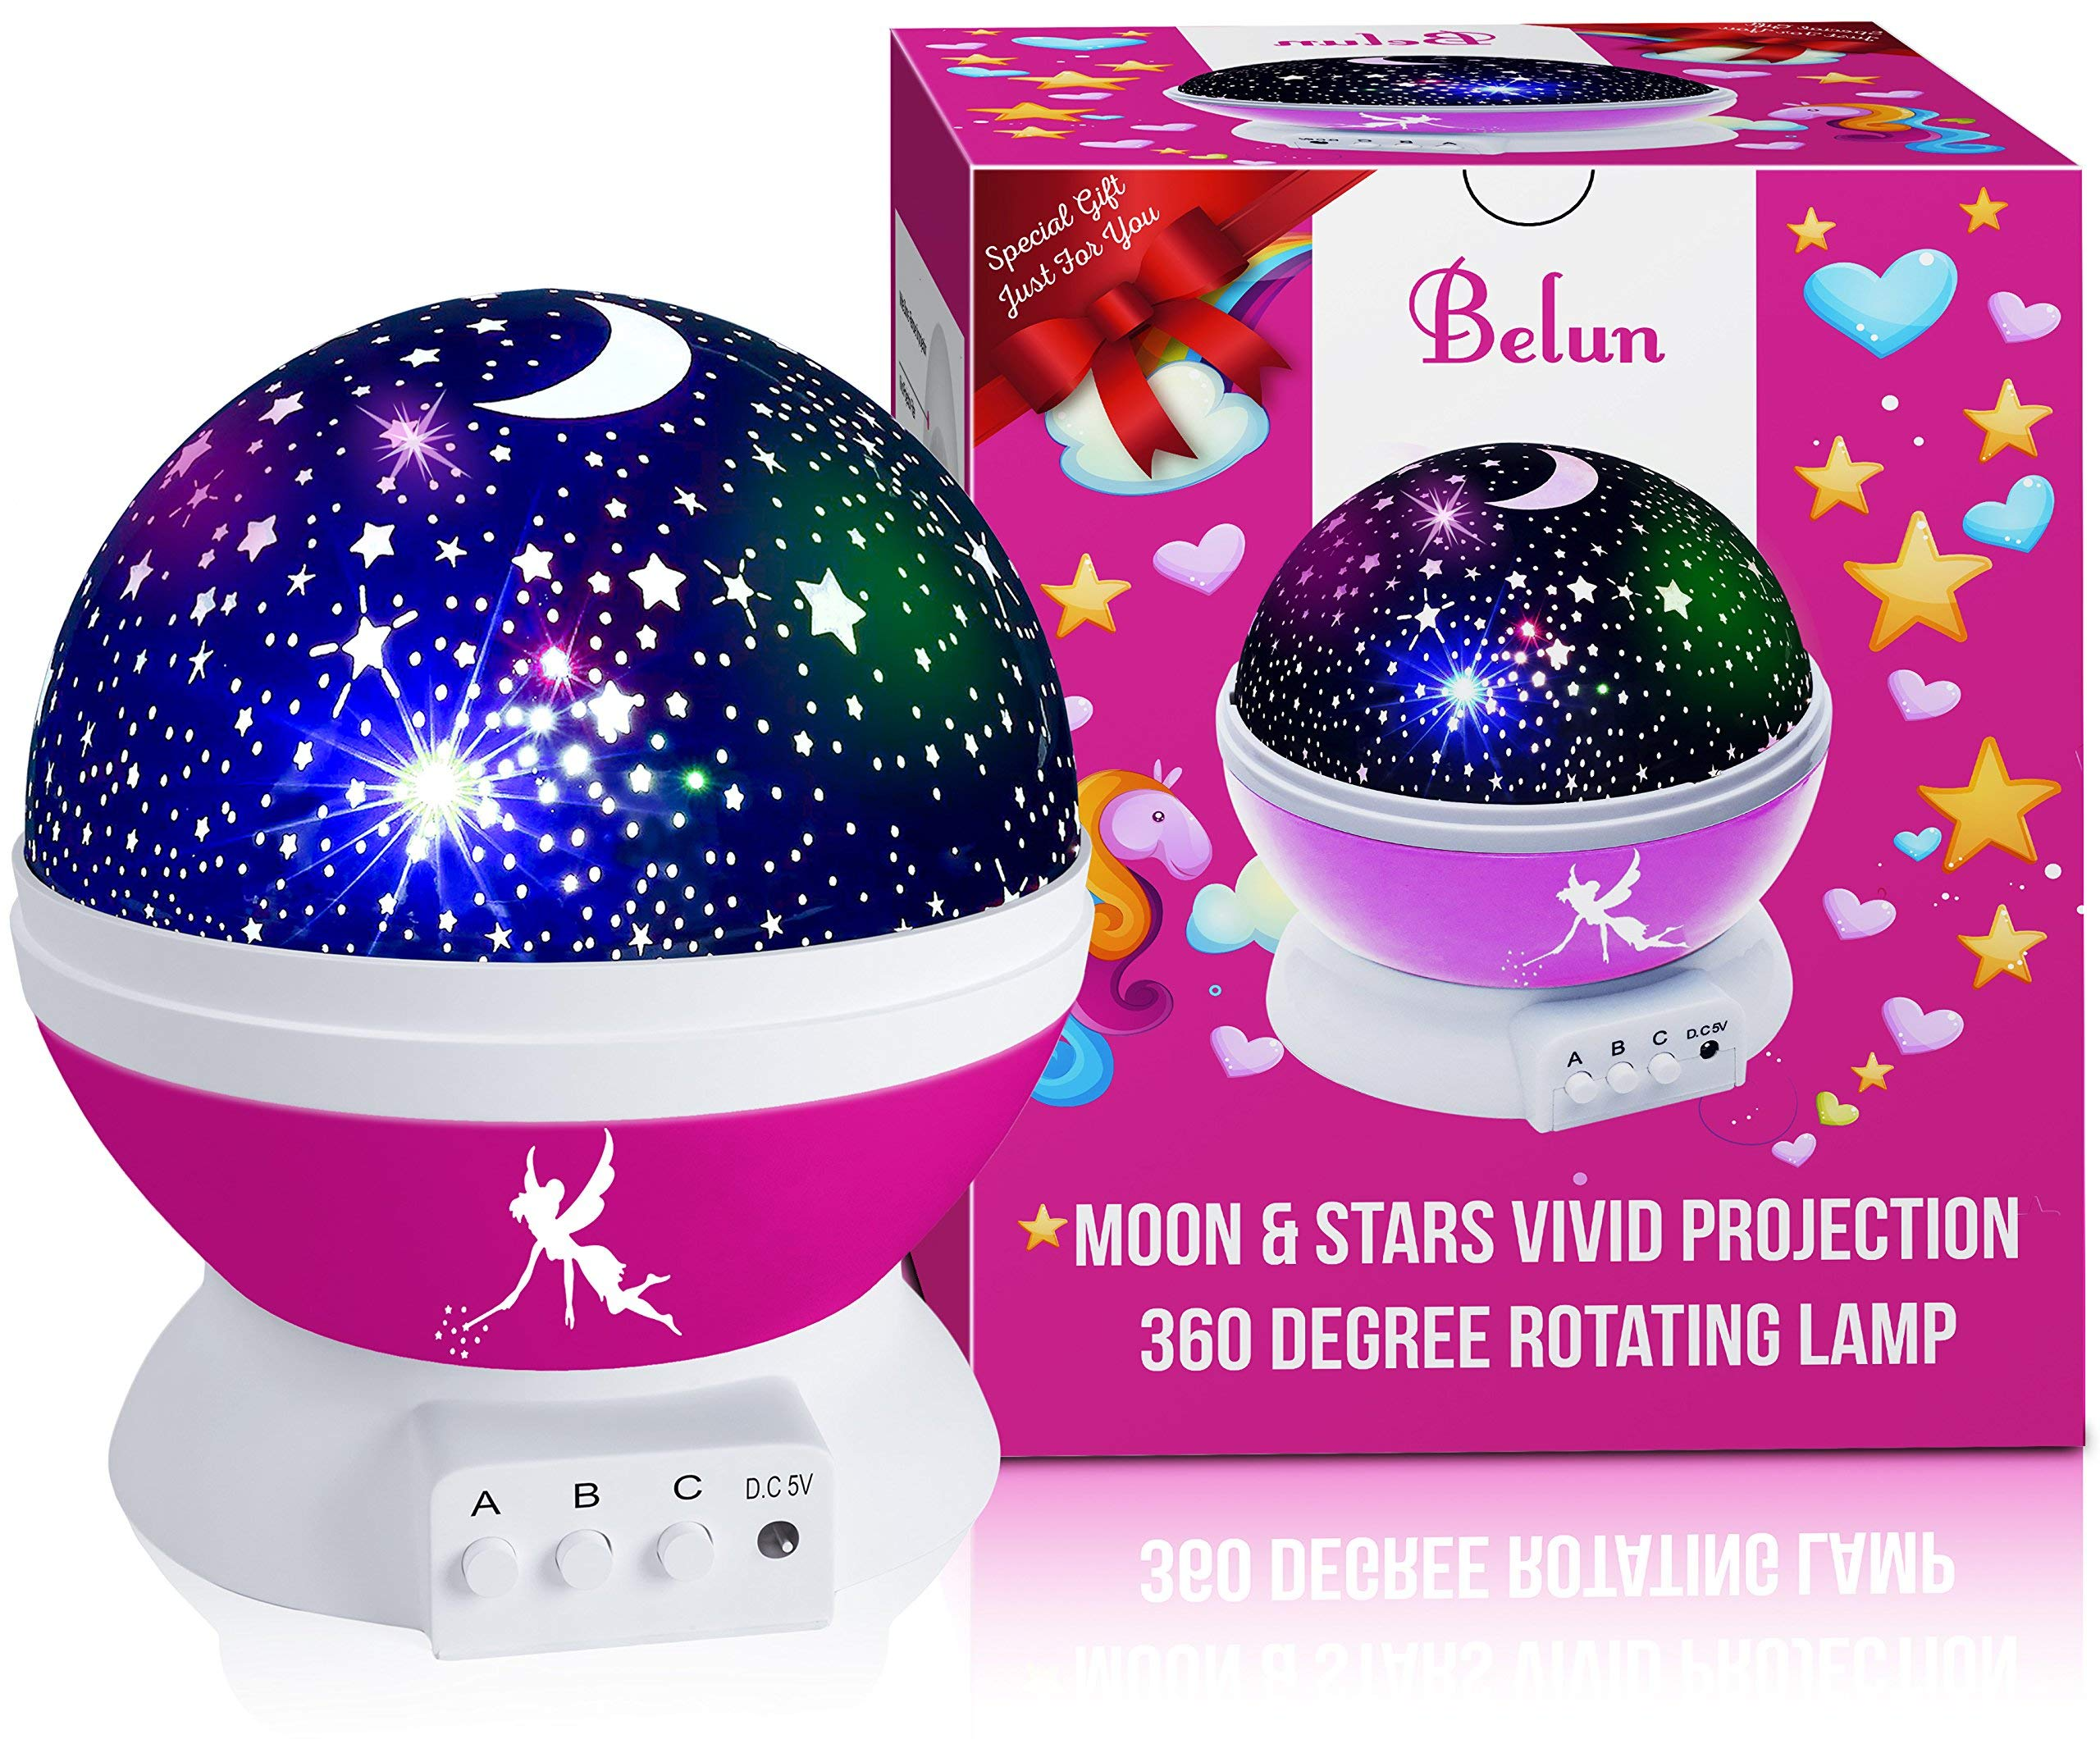 Kids Night Light for Girls, Boys, Babies, Toddlers, 4 LED Bulbs Moon Star Projector Night Light Lamp for Kids Bedroom, Nursery -Bonus Wall Charger, 4.9 ft USB Cable, Best Gift Idea Ever BELUN (Pink)